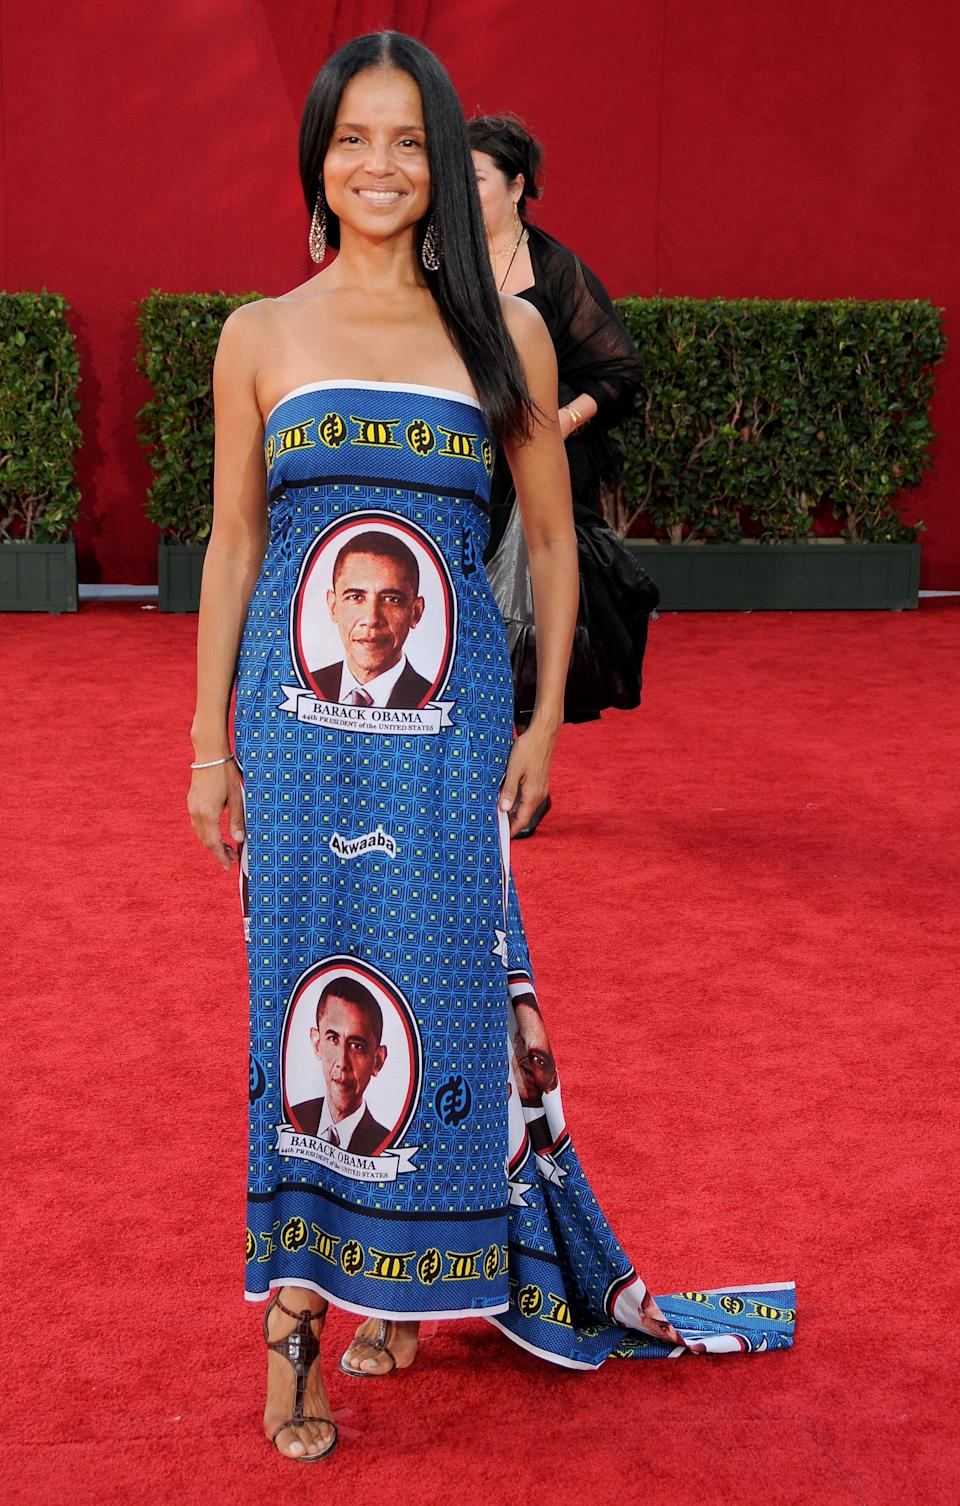 Rowell says she had an Obama dress made for the Emmys to voice support for Obamacare. (Photo: Gregg DeGuire/FilmMagic)